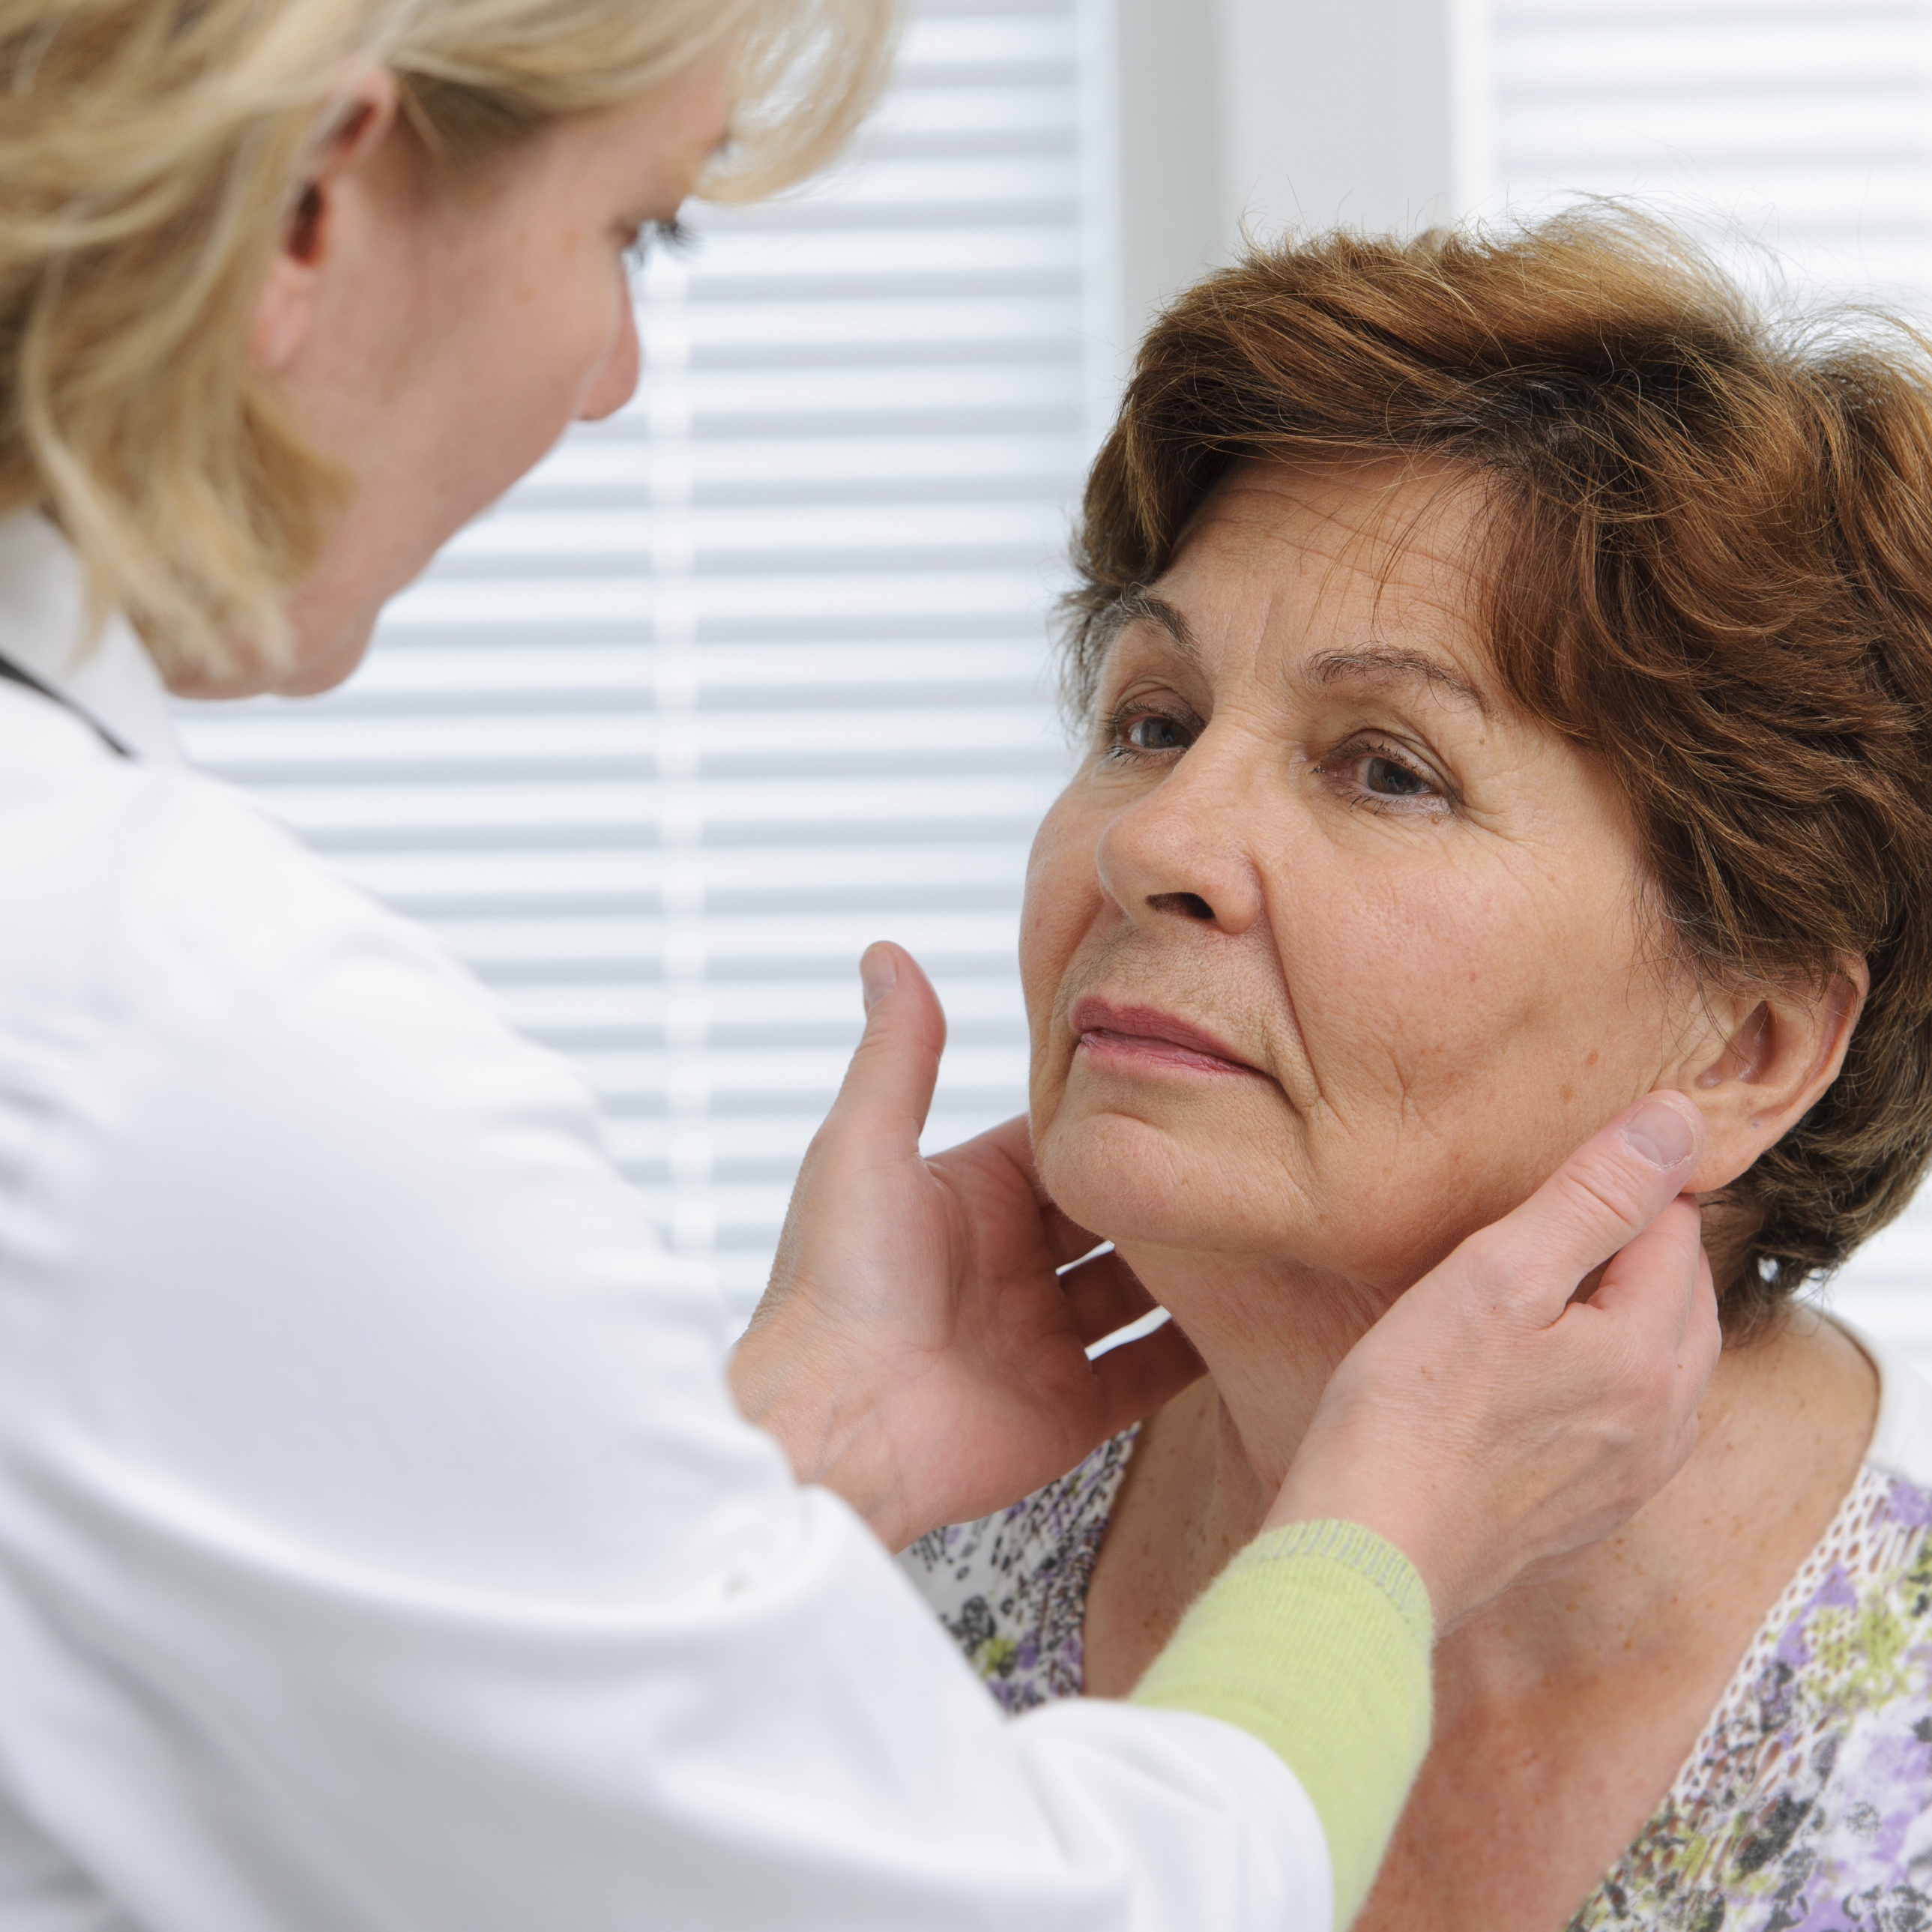 Know the signs of thyroid problems